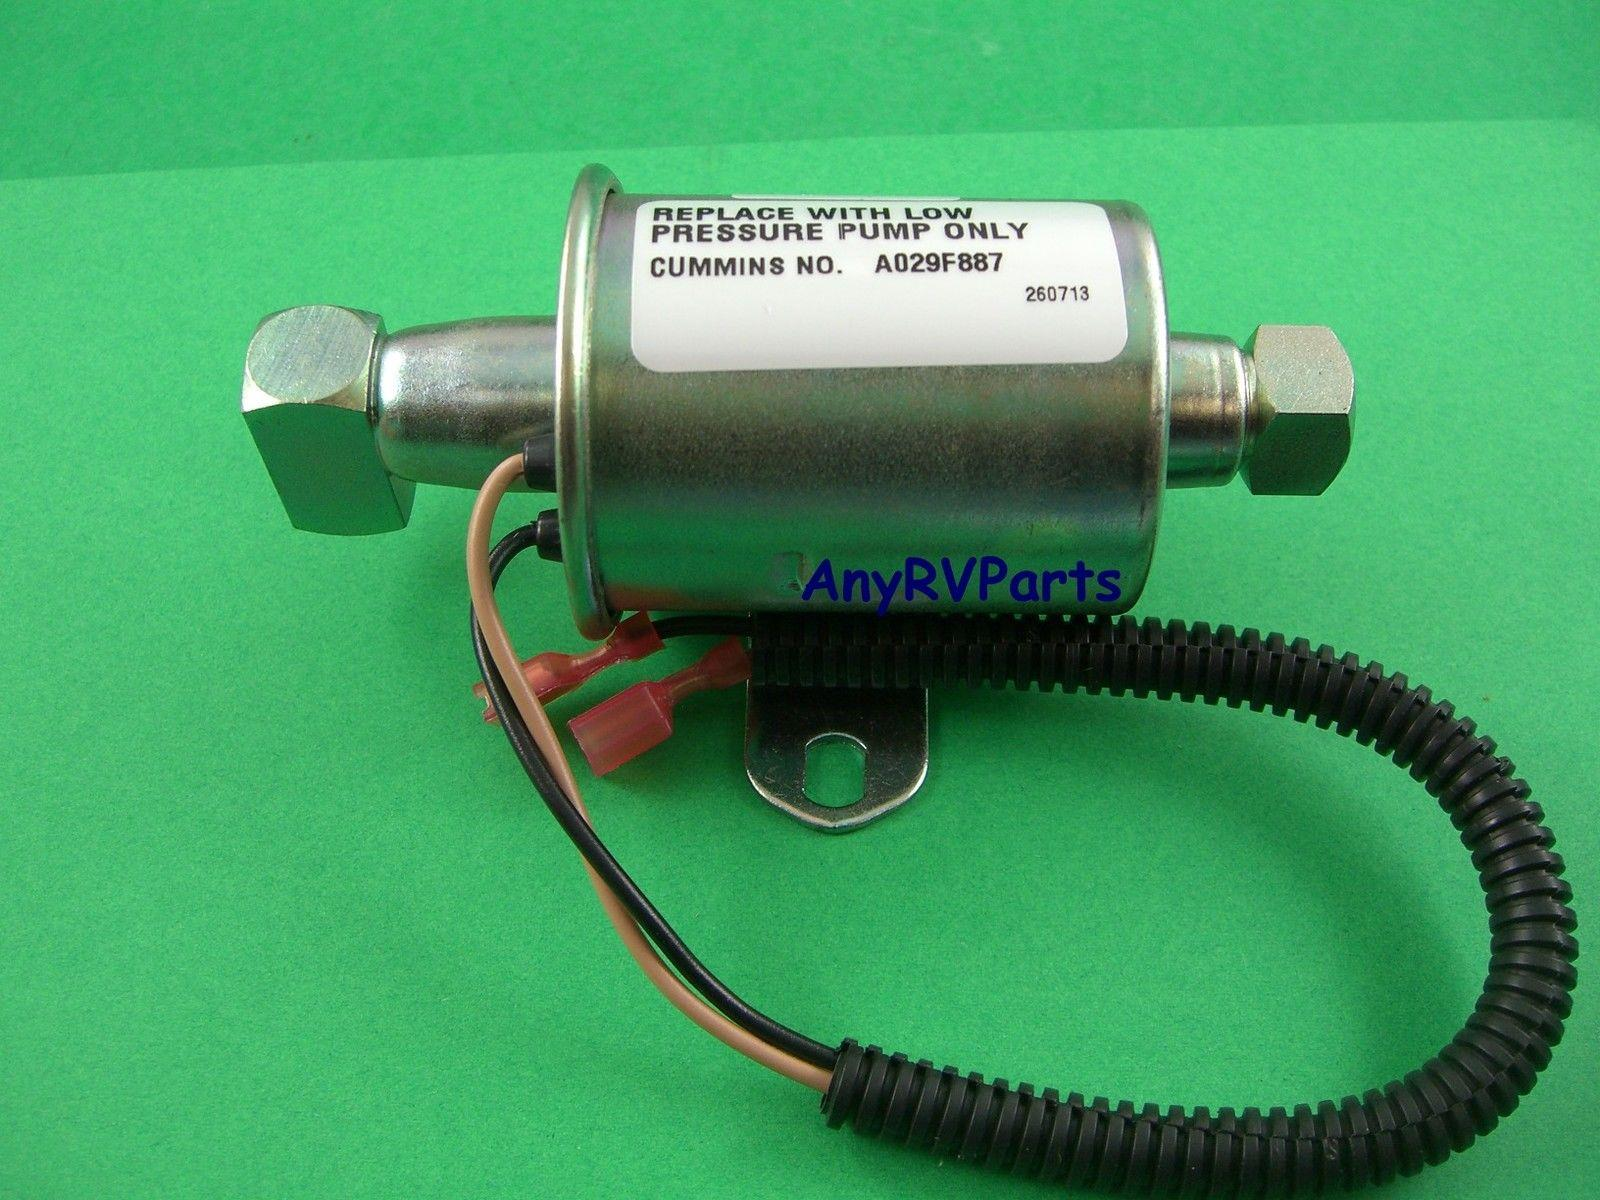 hight resolution of 22861231 genuine onan generator 149 2620 marquis fuel pump a029f887 generator onan wiring onan 5000 marquis gold generator wiring diagram